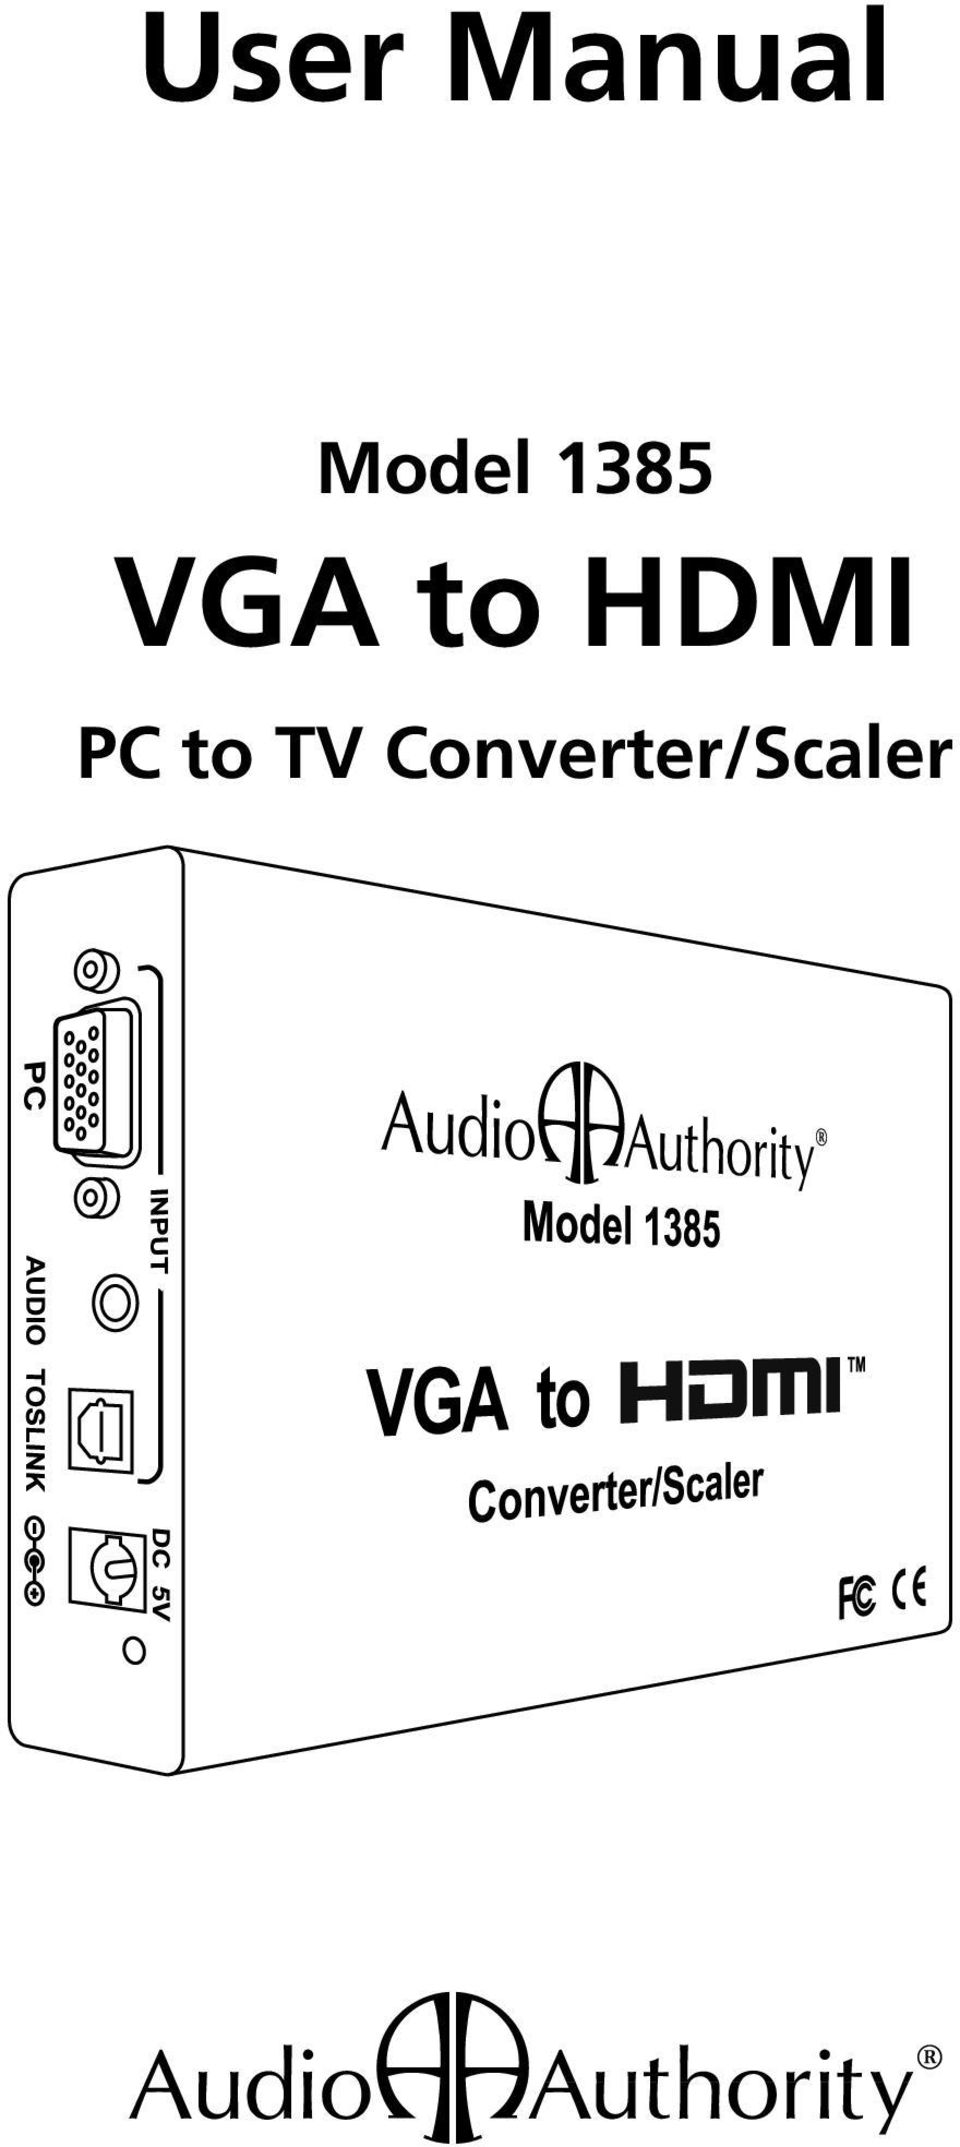 to HDMI PC to